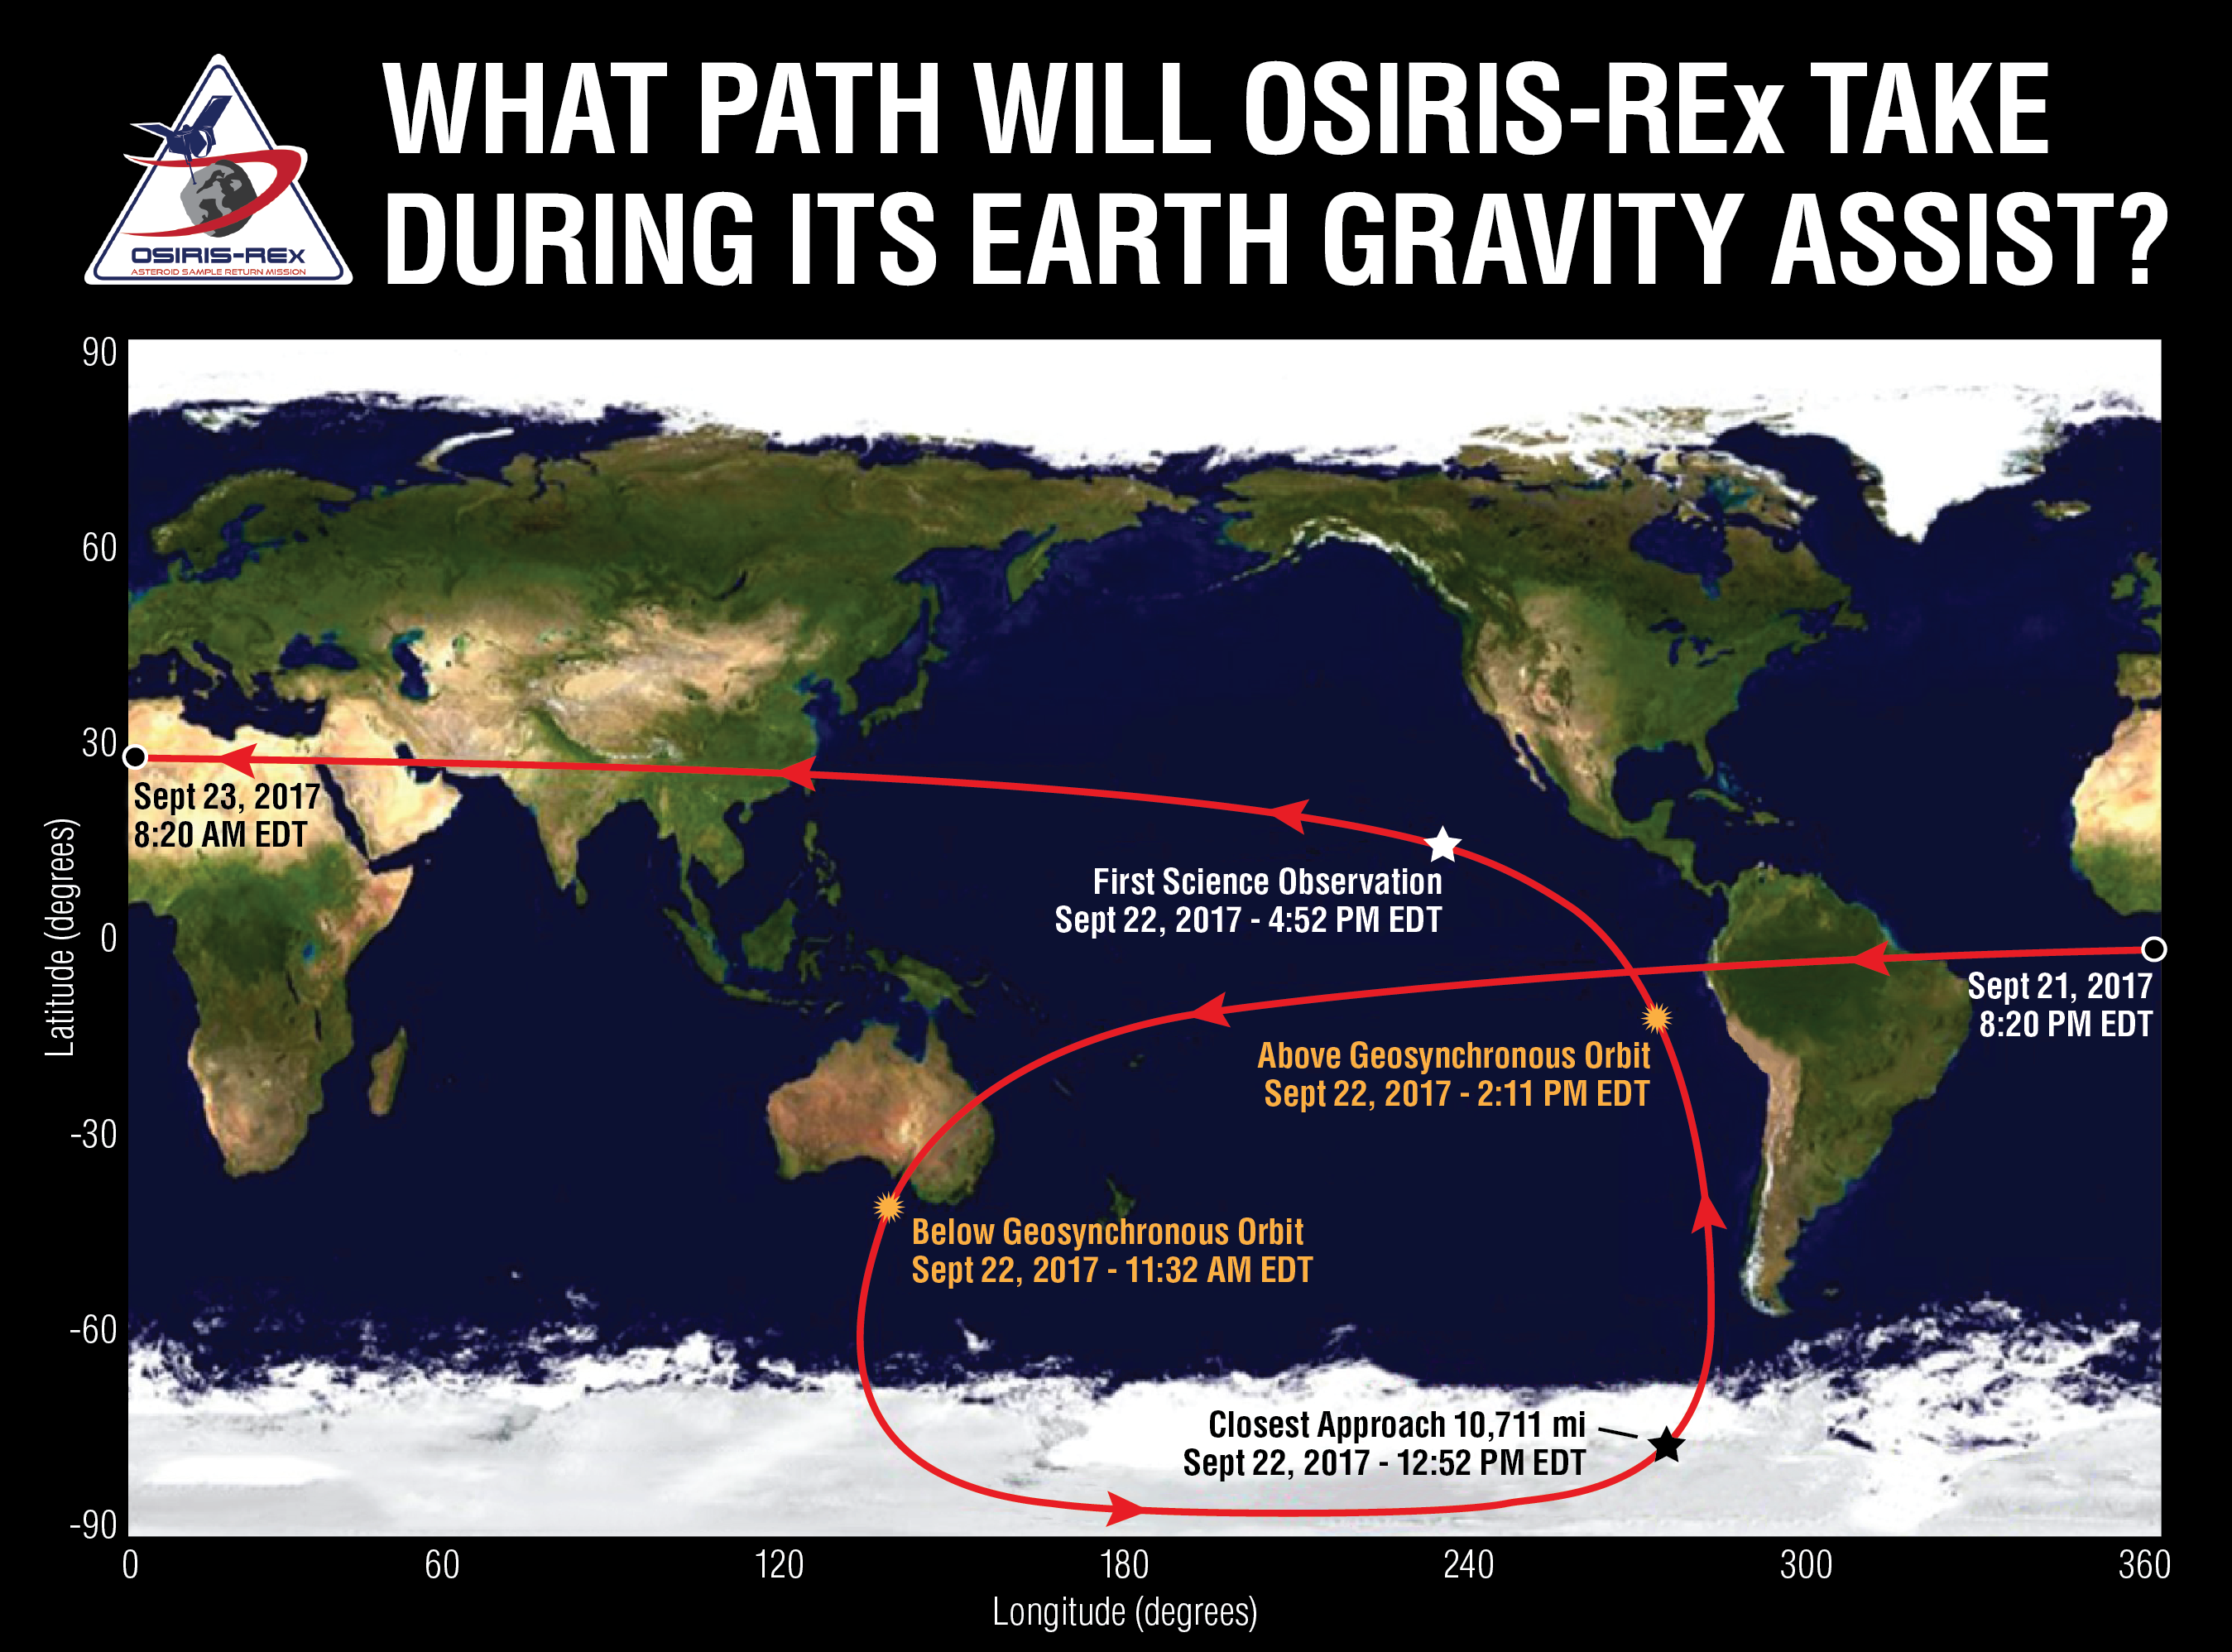 What Path Will OSIRIS-REx Take During Its Earth Gravity Assist?